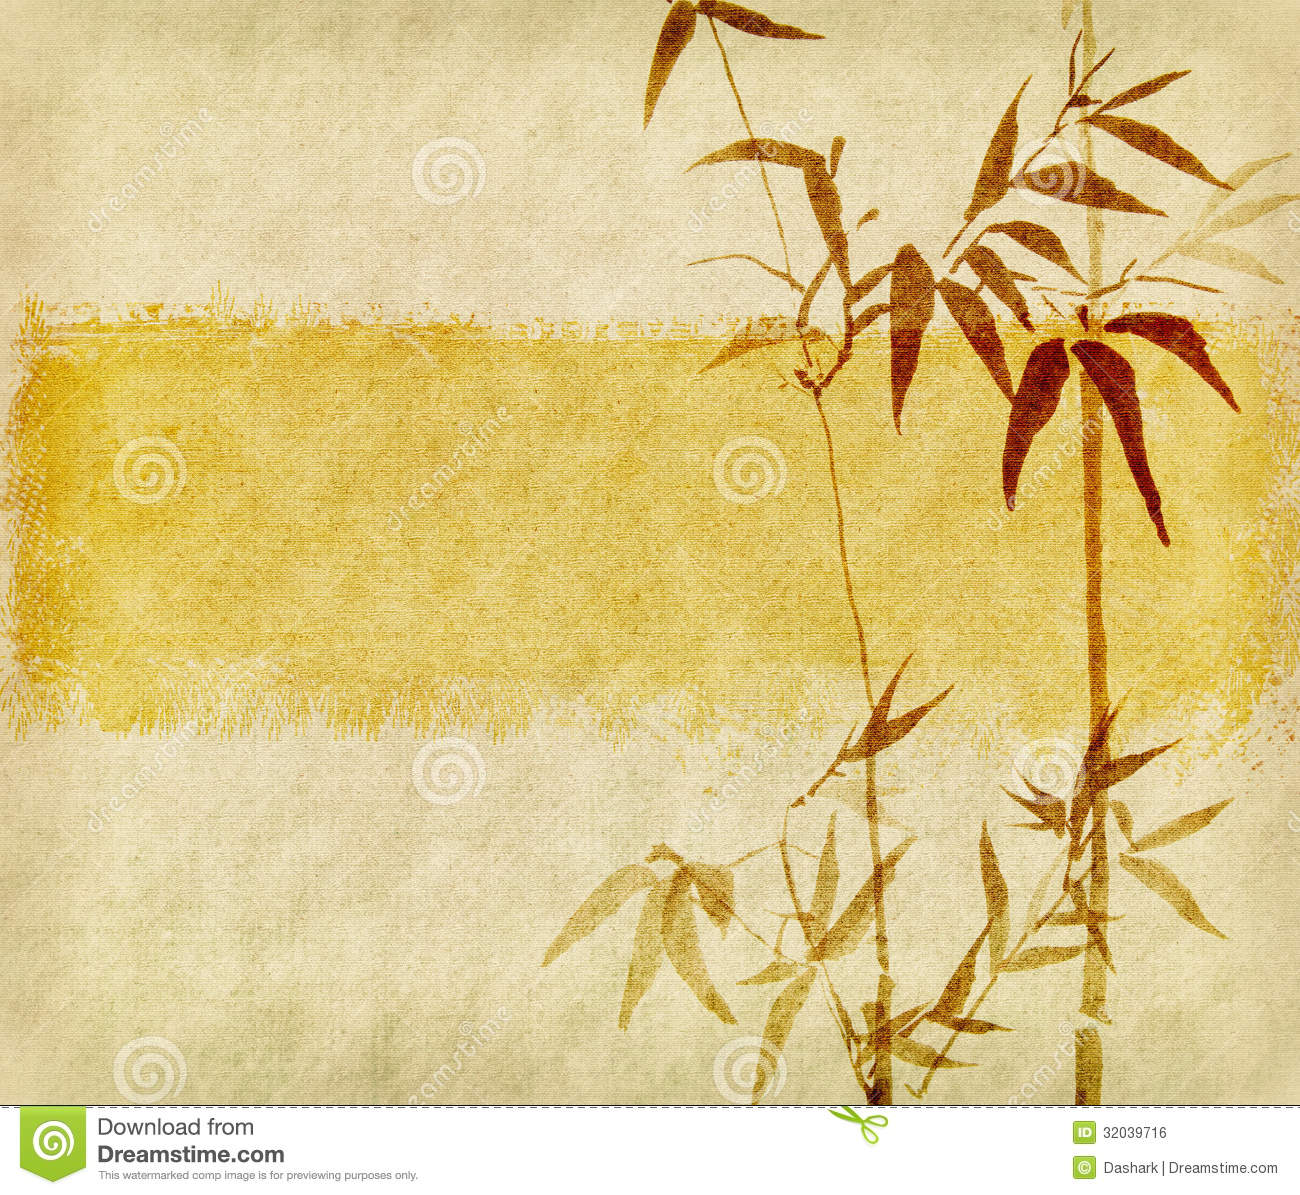 Image Result For Brown Ragged Old Paper Background Texture Download Free